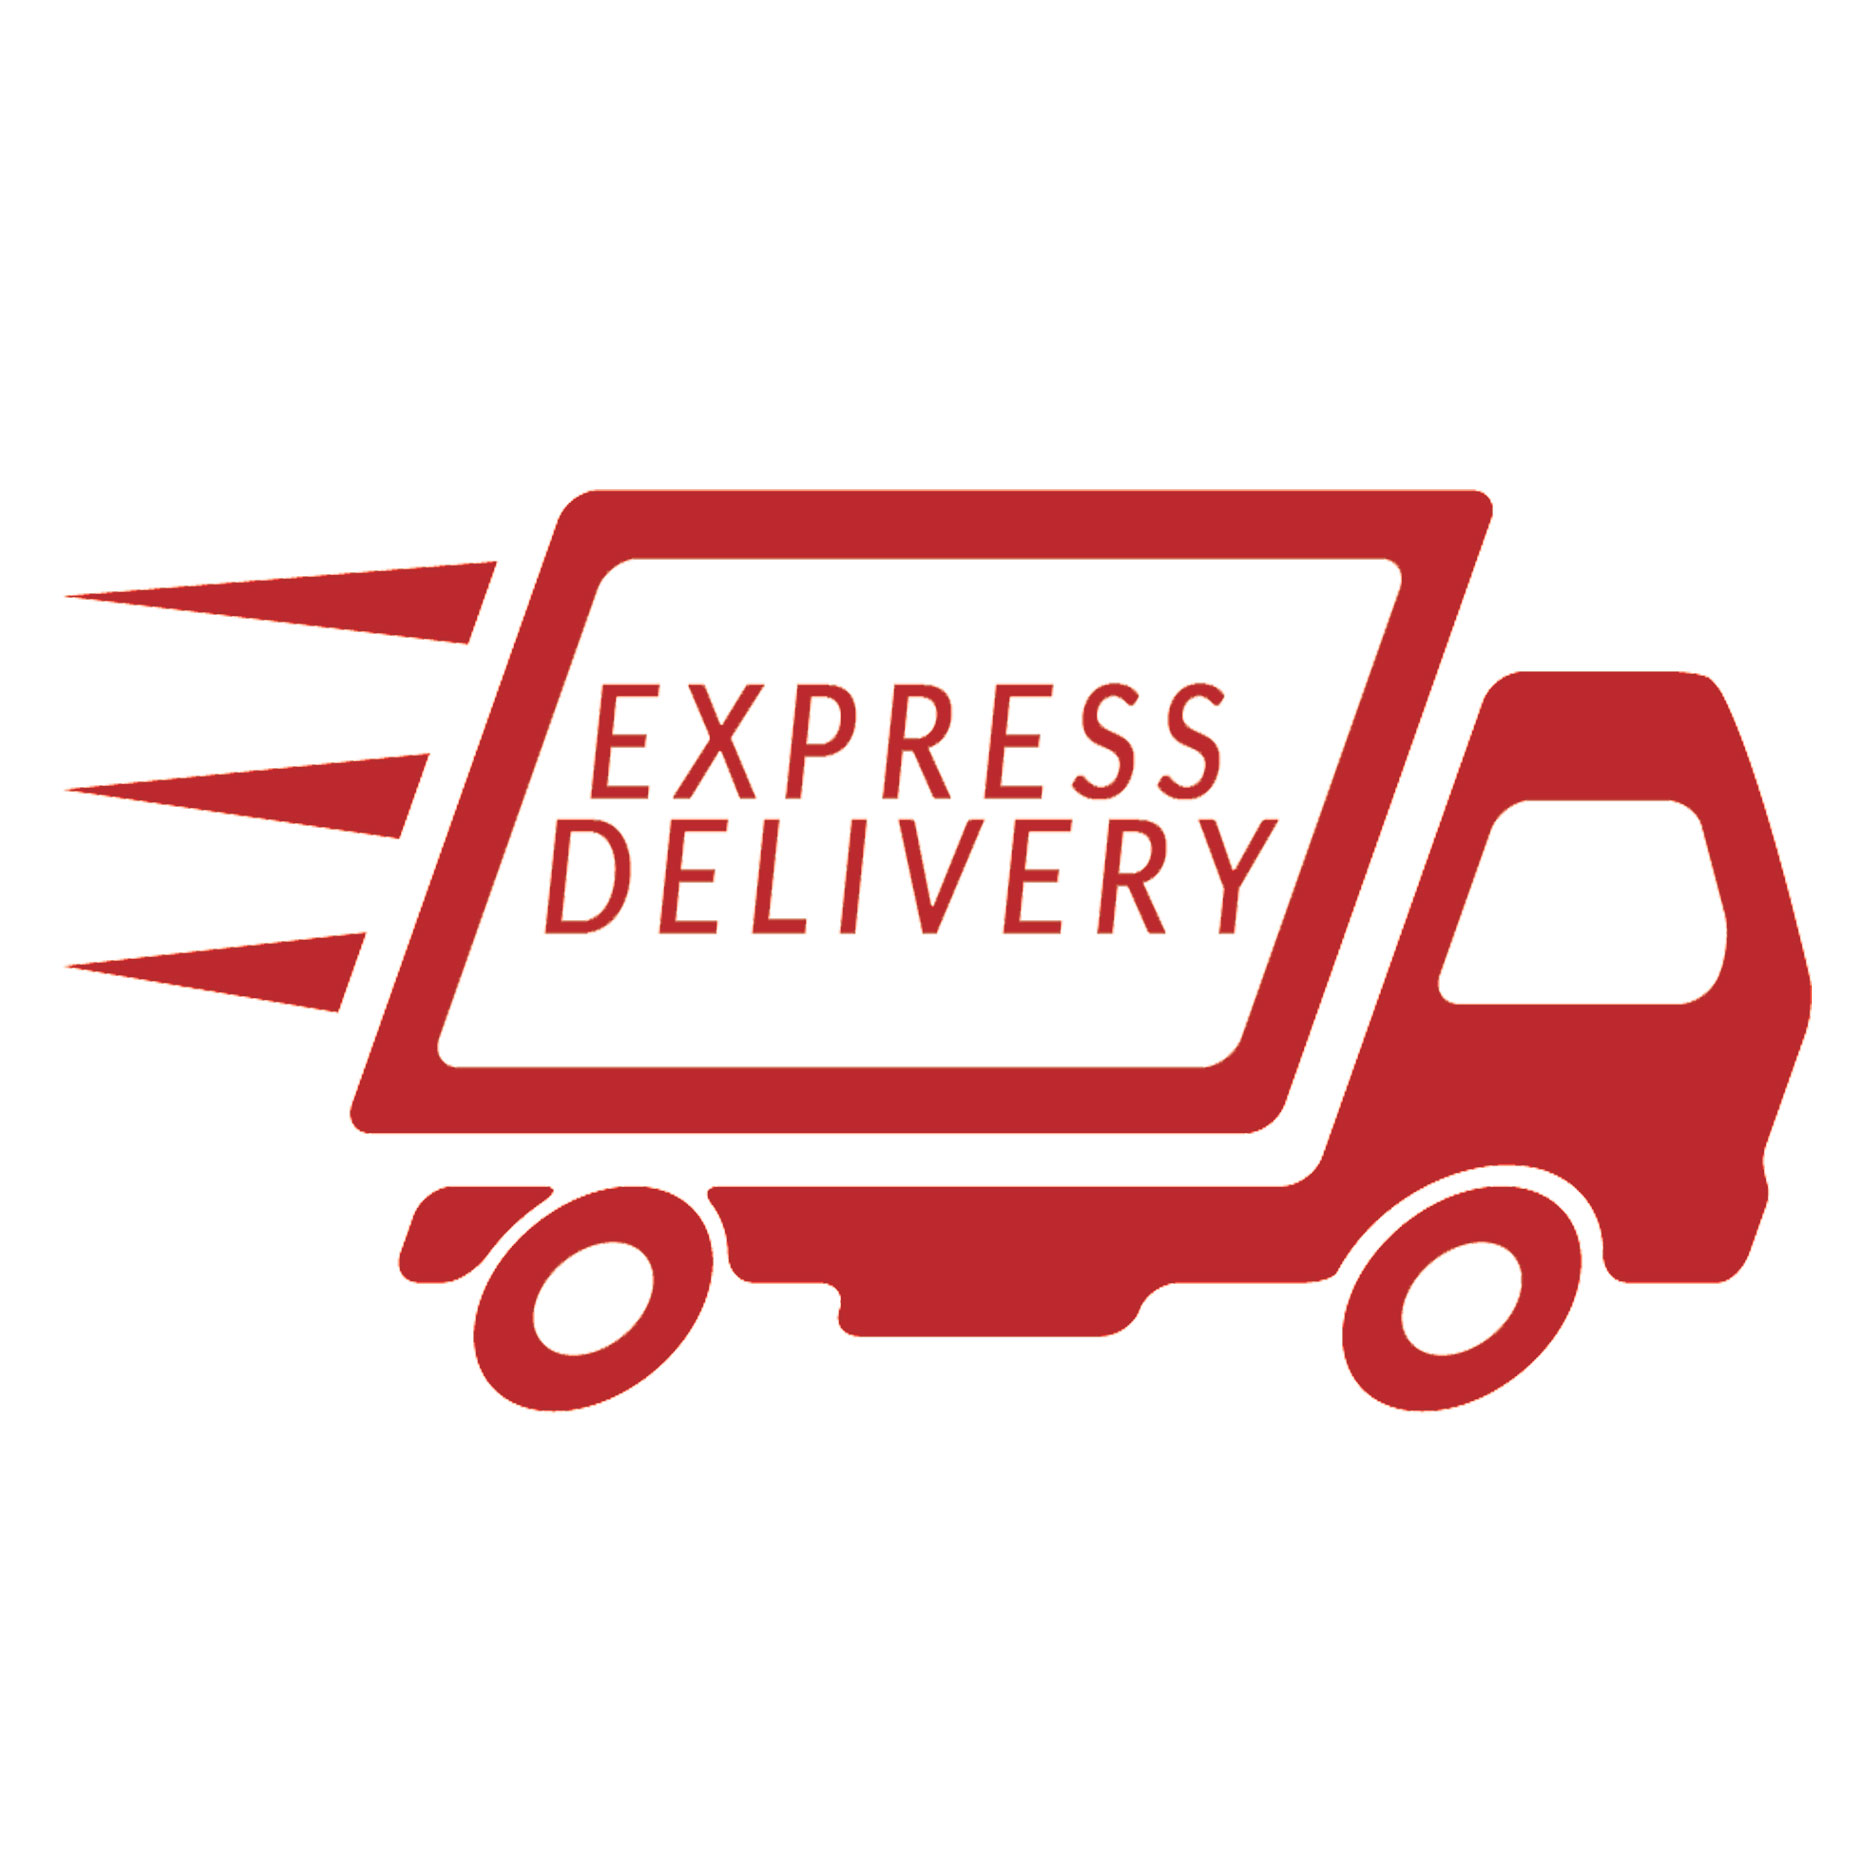 Express mail clipart image free download Delivery Fee image free download